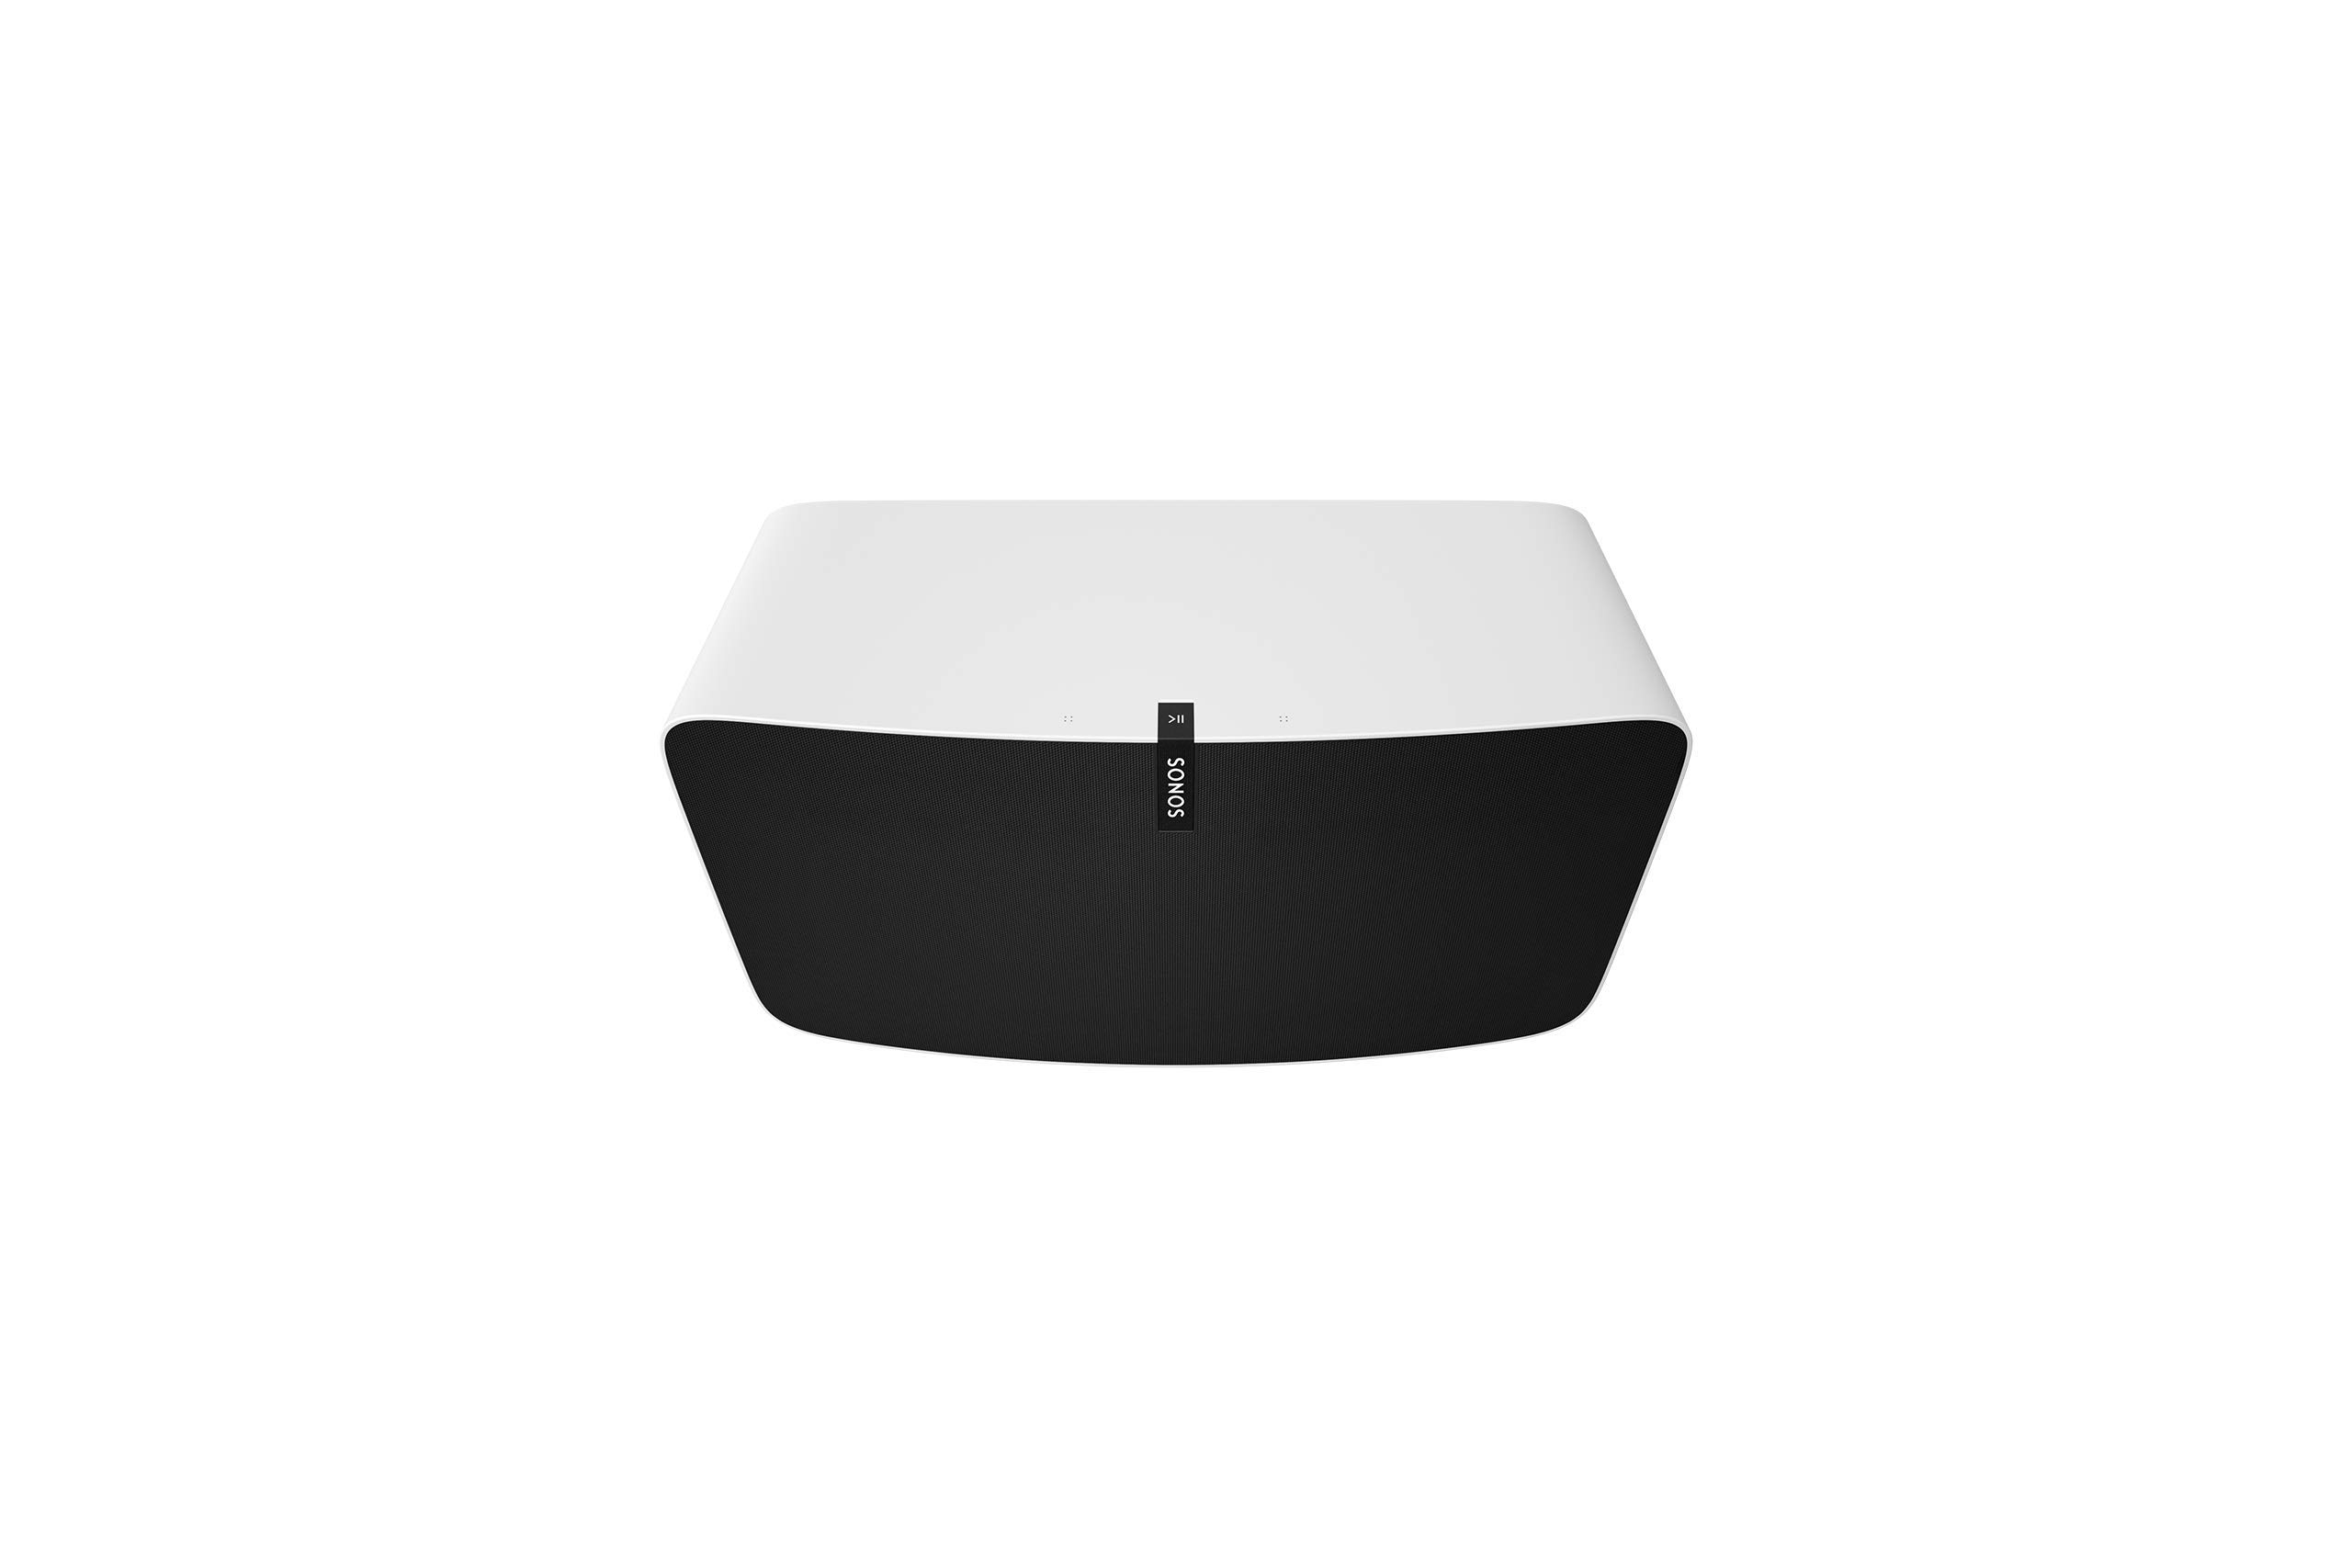 Sonos Play:5, the most powerful speaker for high-fidelity sound. (White)